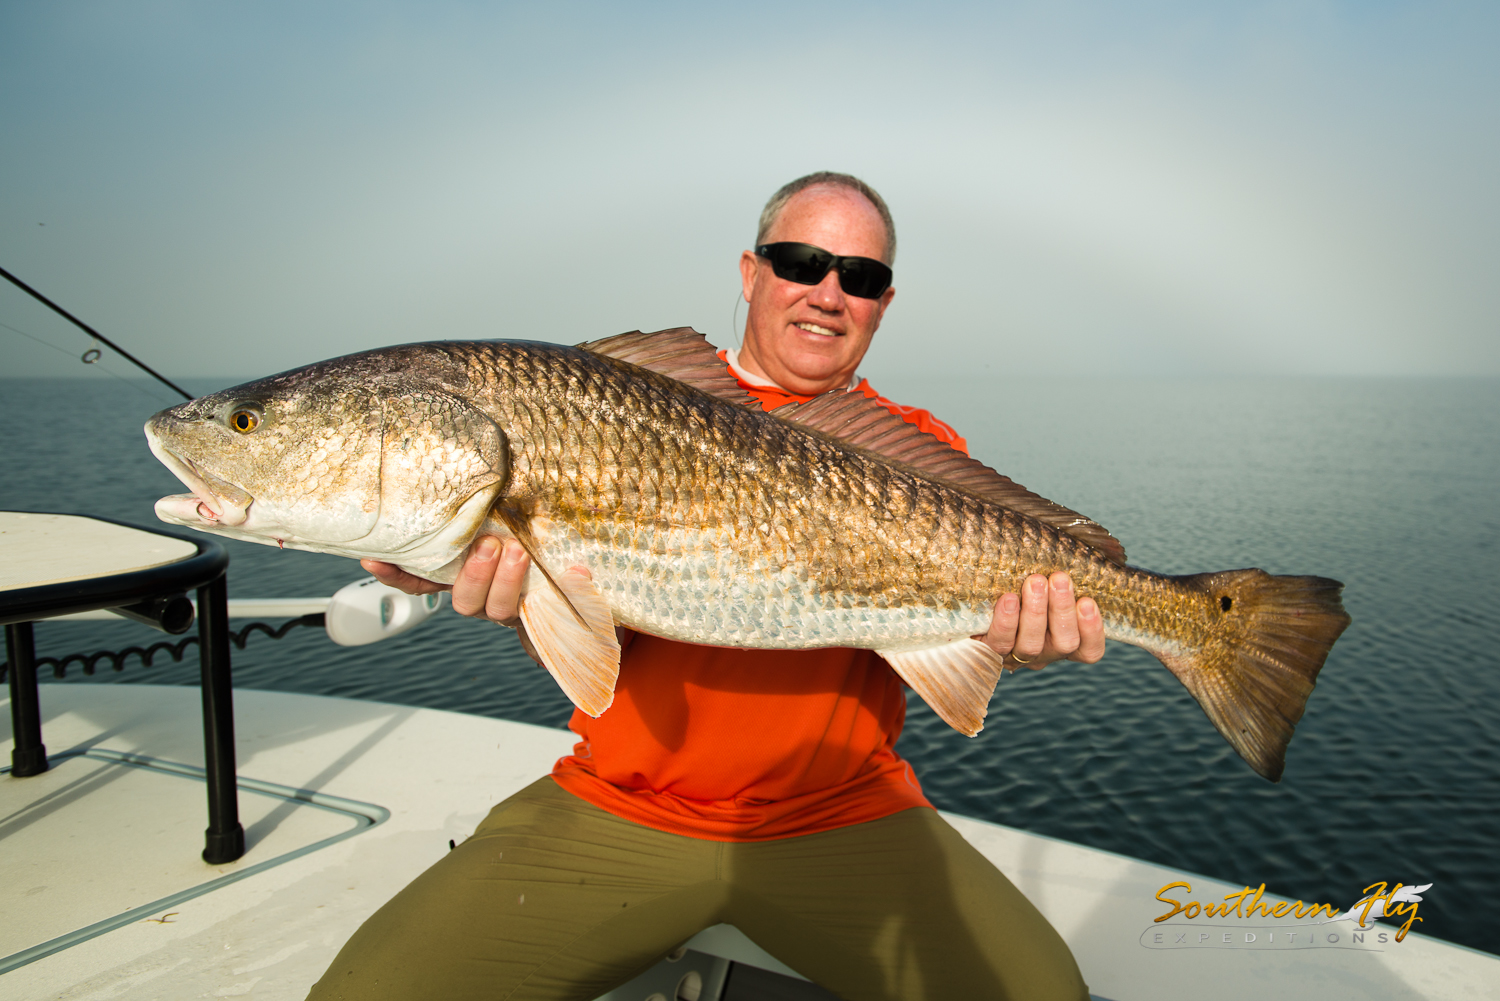 Fly Fishing in Hopedale Louisiana with the best fly fishing guide southern fly expeditions